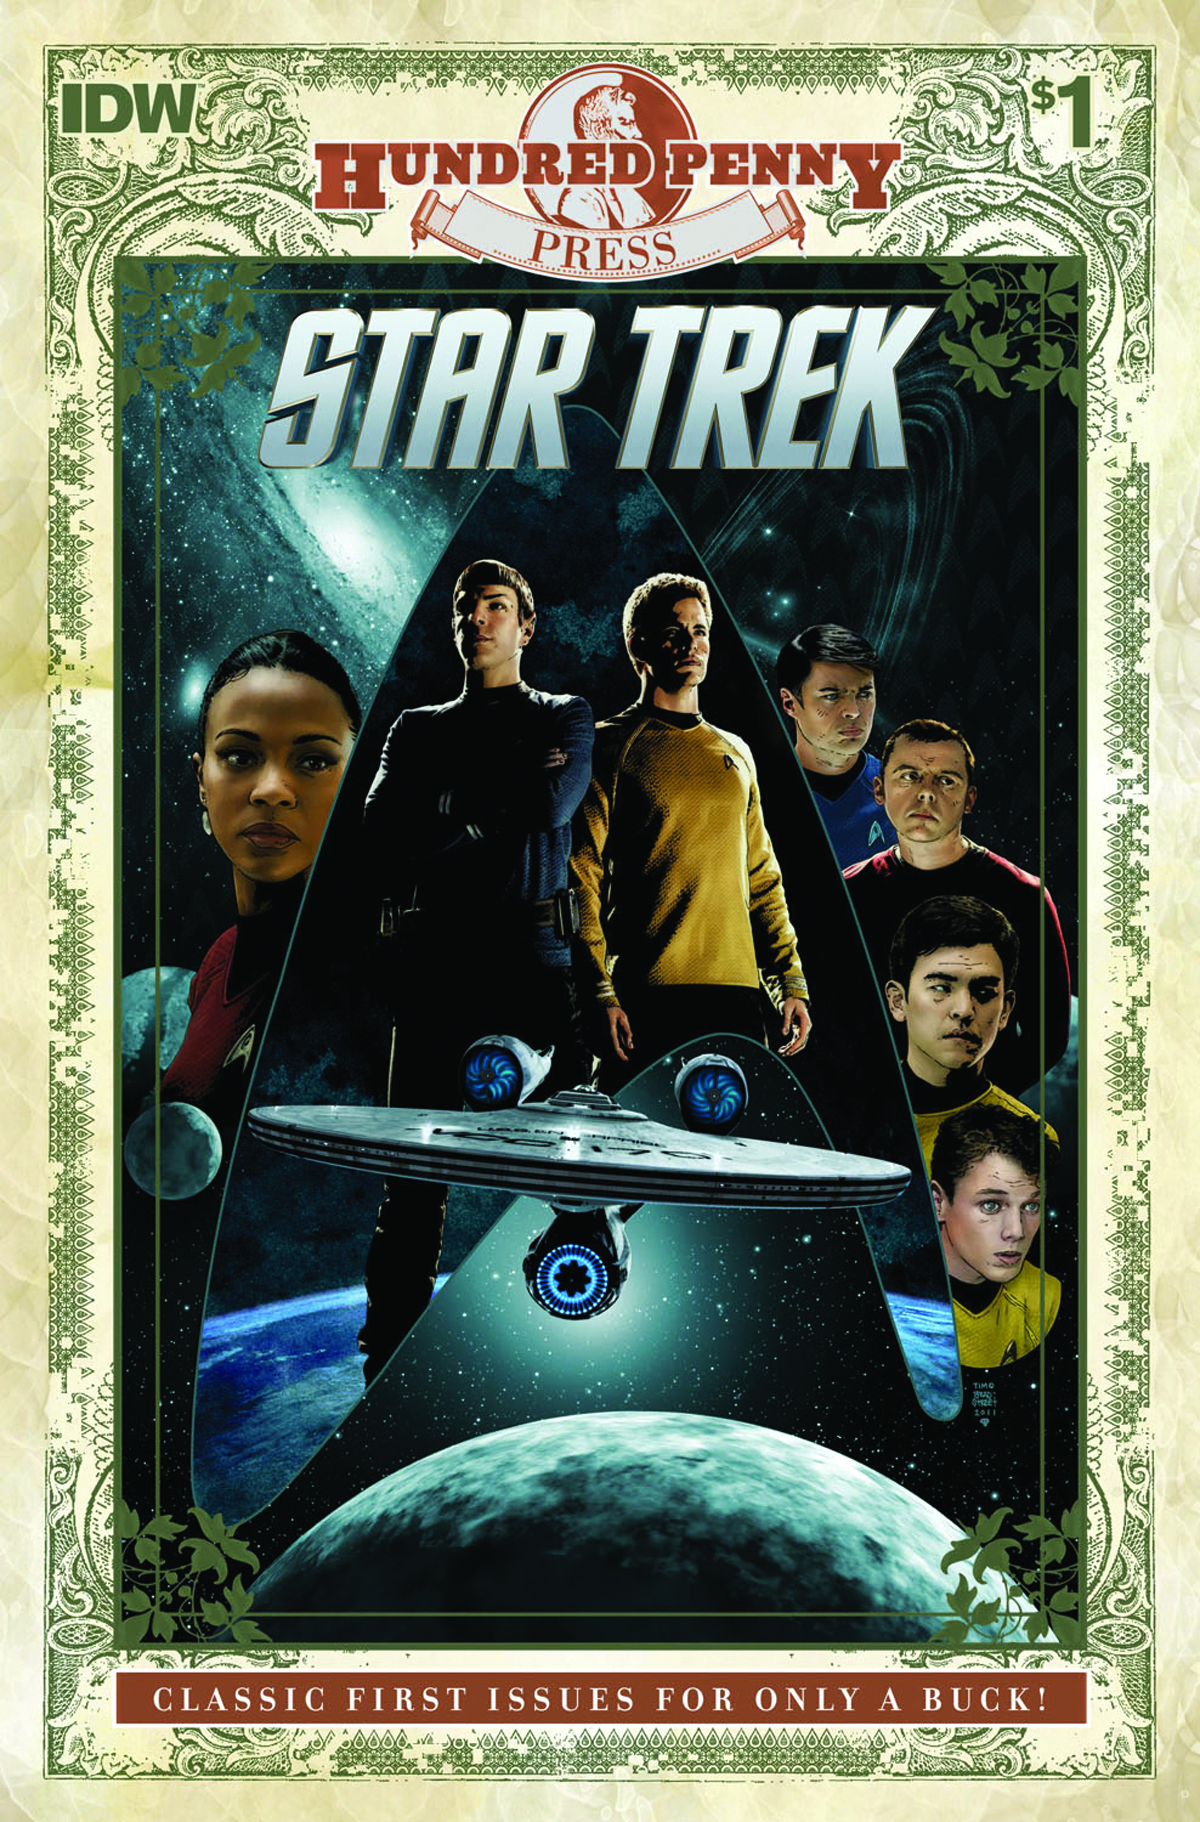 100 PENNY PRESS STAR TREK #1